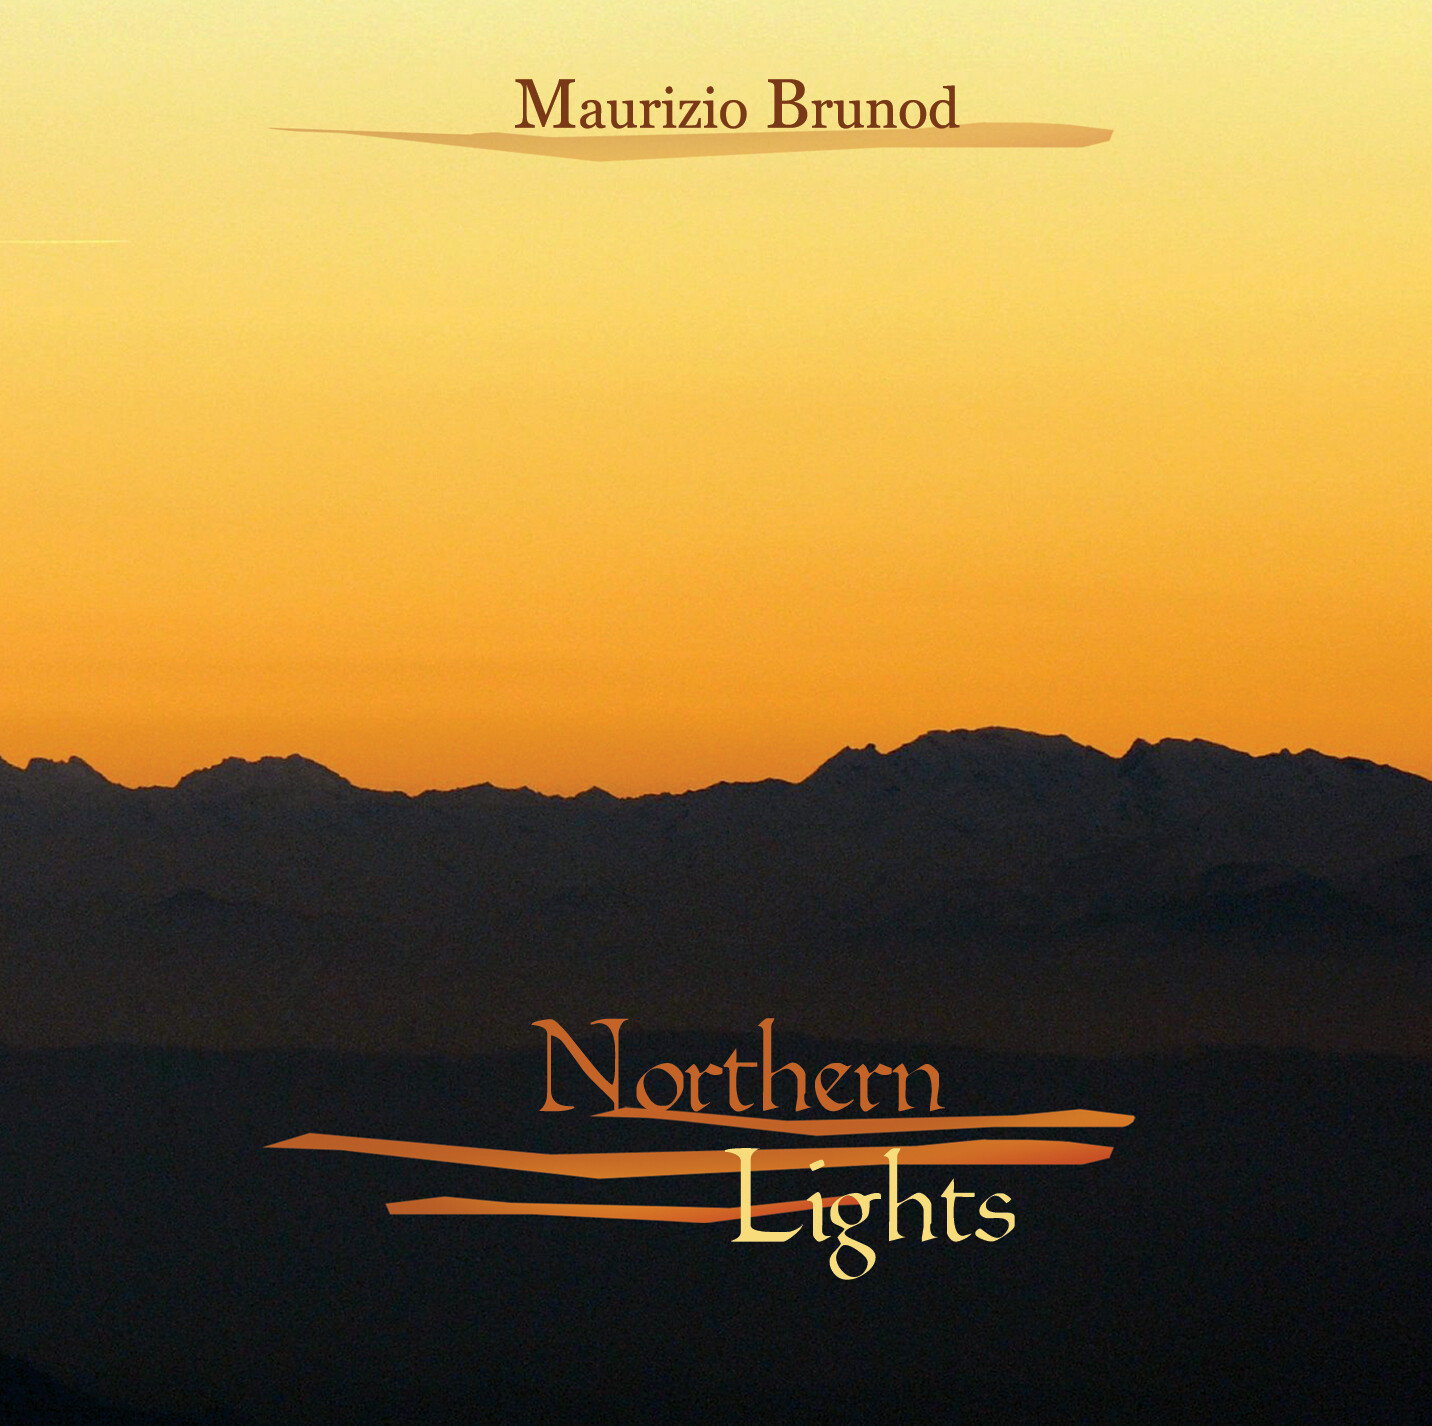 MAURIZIO BRUNOD «Northern lights» (solo in digitale/only digital)